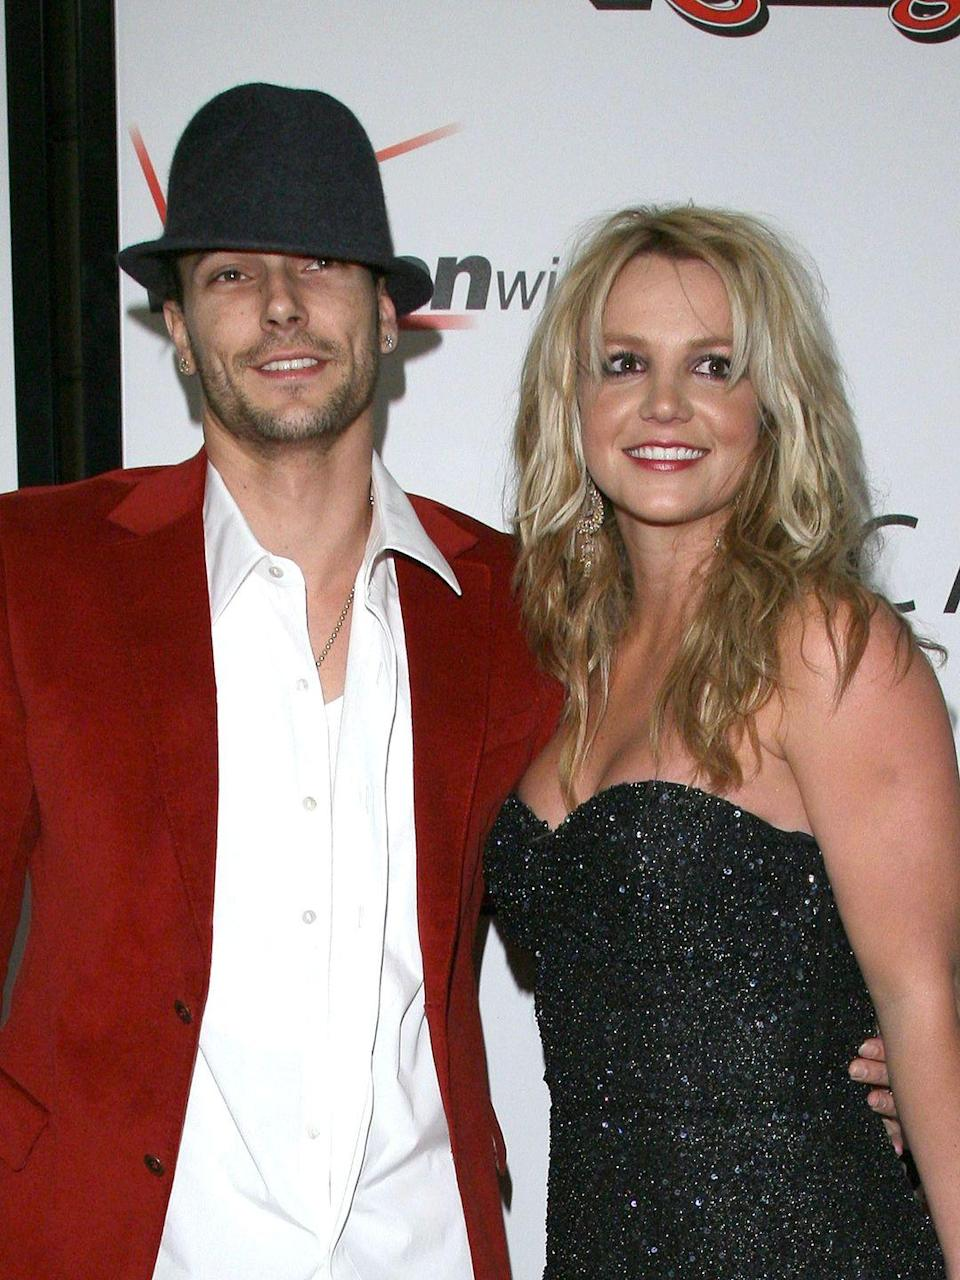 "<p>Britney Spears invited backup dancer Kevin Federline on tour with her in Europe and popped the question. Their <a href=""http://www.usmagazine.com/celebrity-news/news/britney-spears-and-kevin-federline-10th-wedding-anniversary-2014199"" rel=""nofollow noopener"" target=""_blank"" data-ylk=""slk:wedding"" class=""link rapid-noclick-resp"">wedding</a> took place on September 18, 2004. The pair were married for two years, and share two sons together. Spears filed for divorce in 2006. </p>"